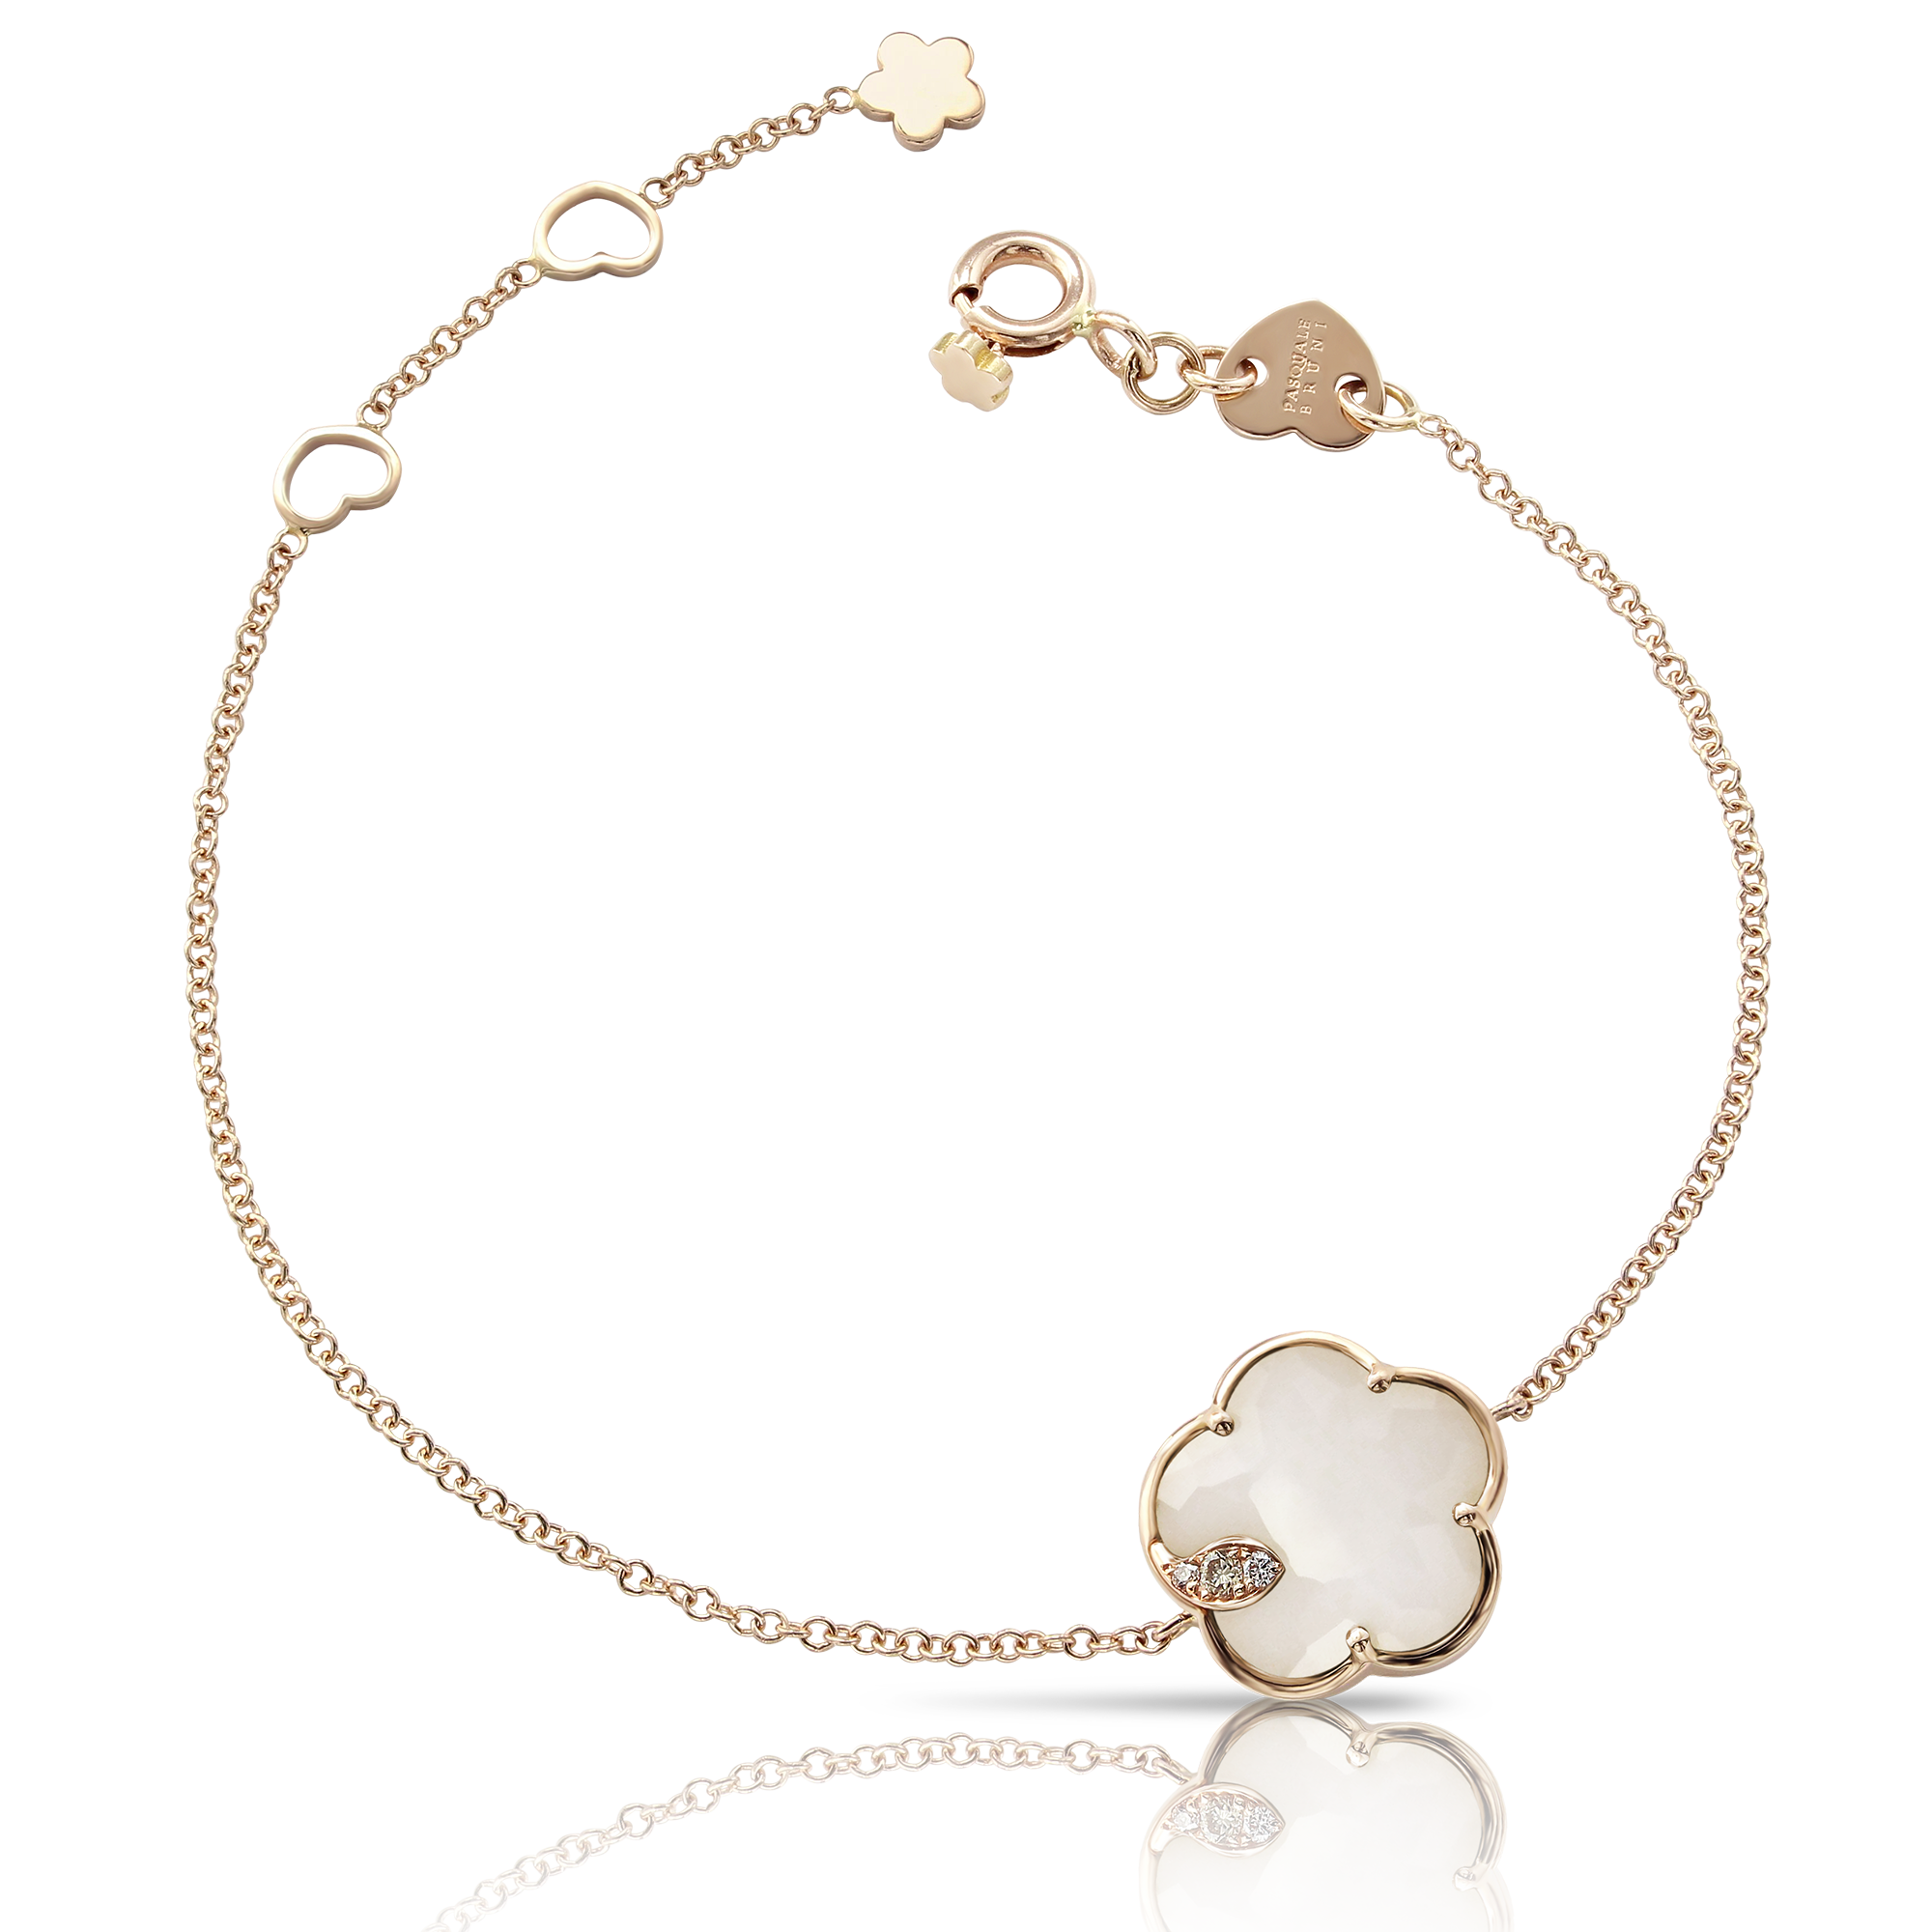 NEW 18k Rose Gold Petit Joli Bracelet with White Agate, White and Champagne Diamonds